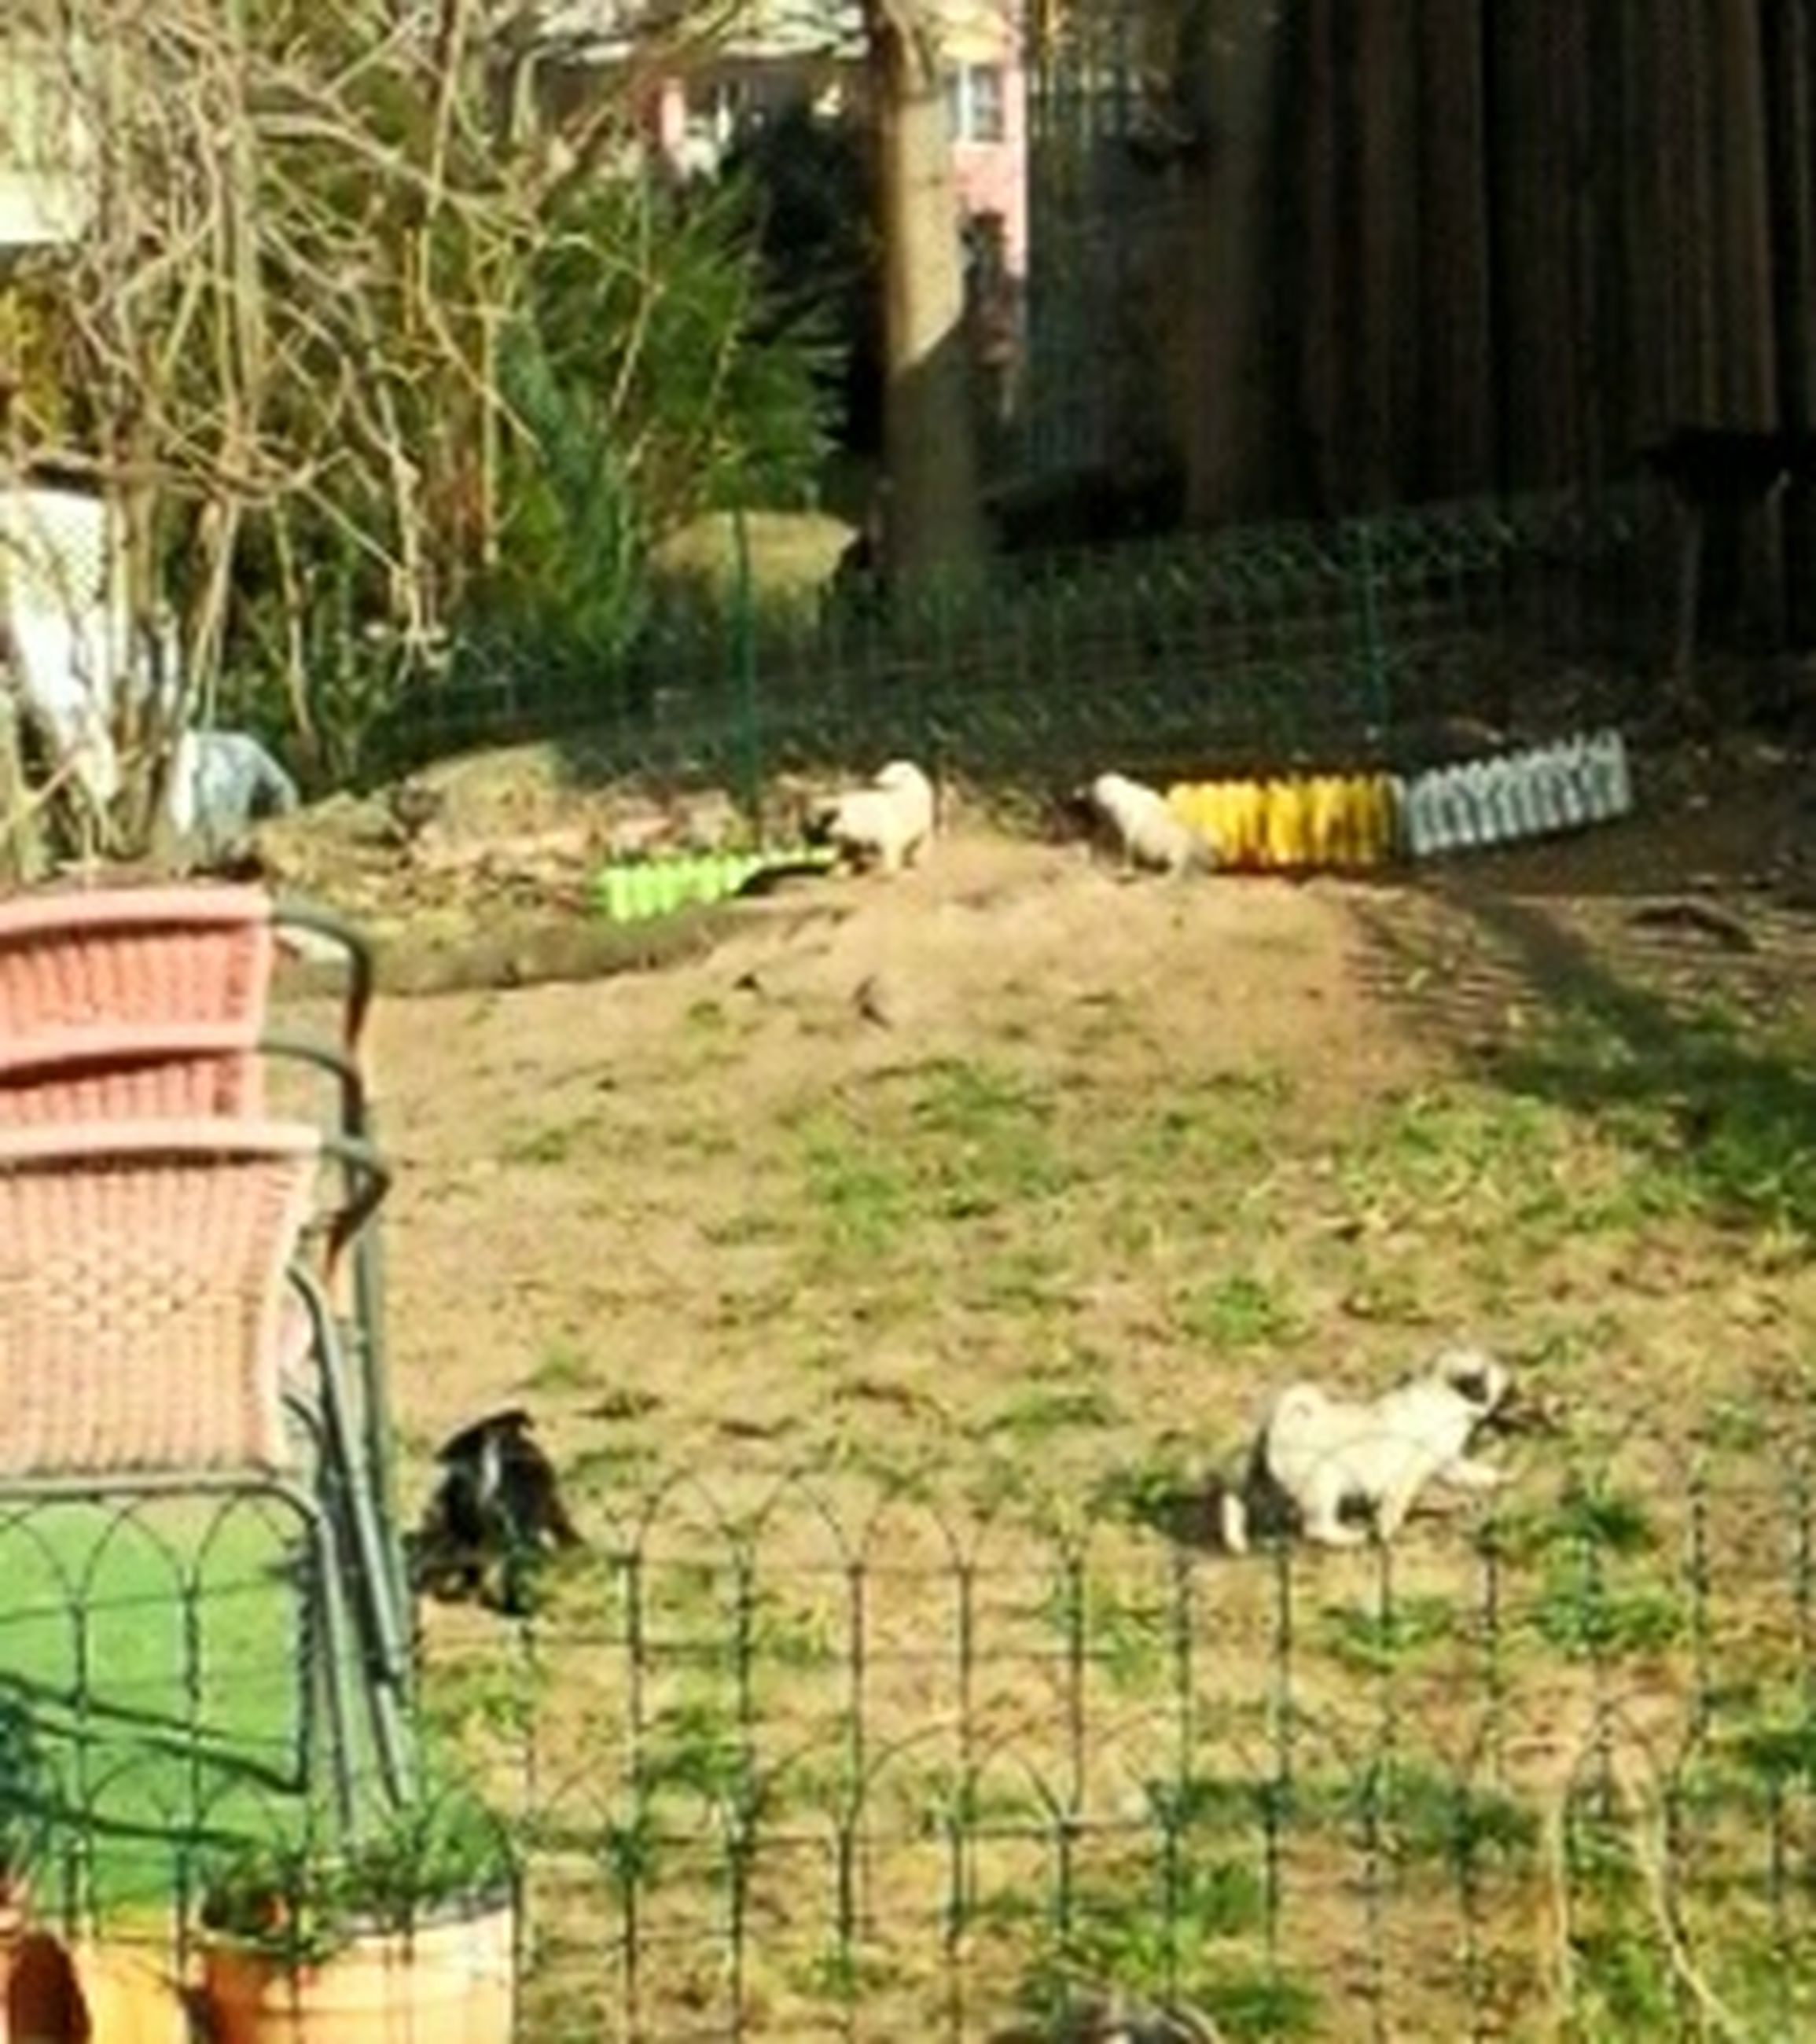 animal themes, one animal, domestic animals, mammal, pets, grass, domestic cat, front or back yard, building exterior, relaxation, cat, built structure, focus on foreground, plant, outdoors, fence, no people, day, architecture, feline